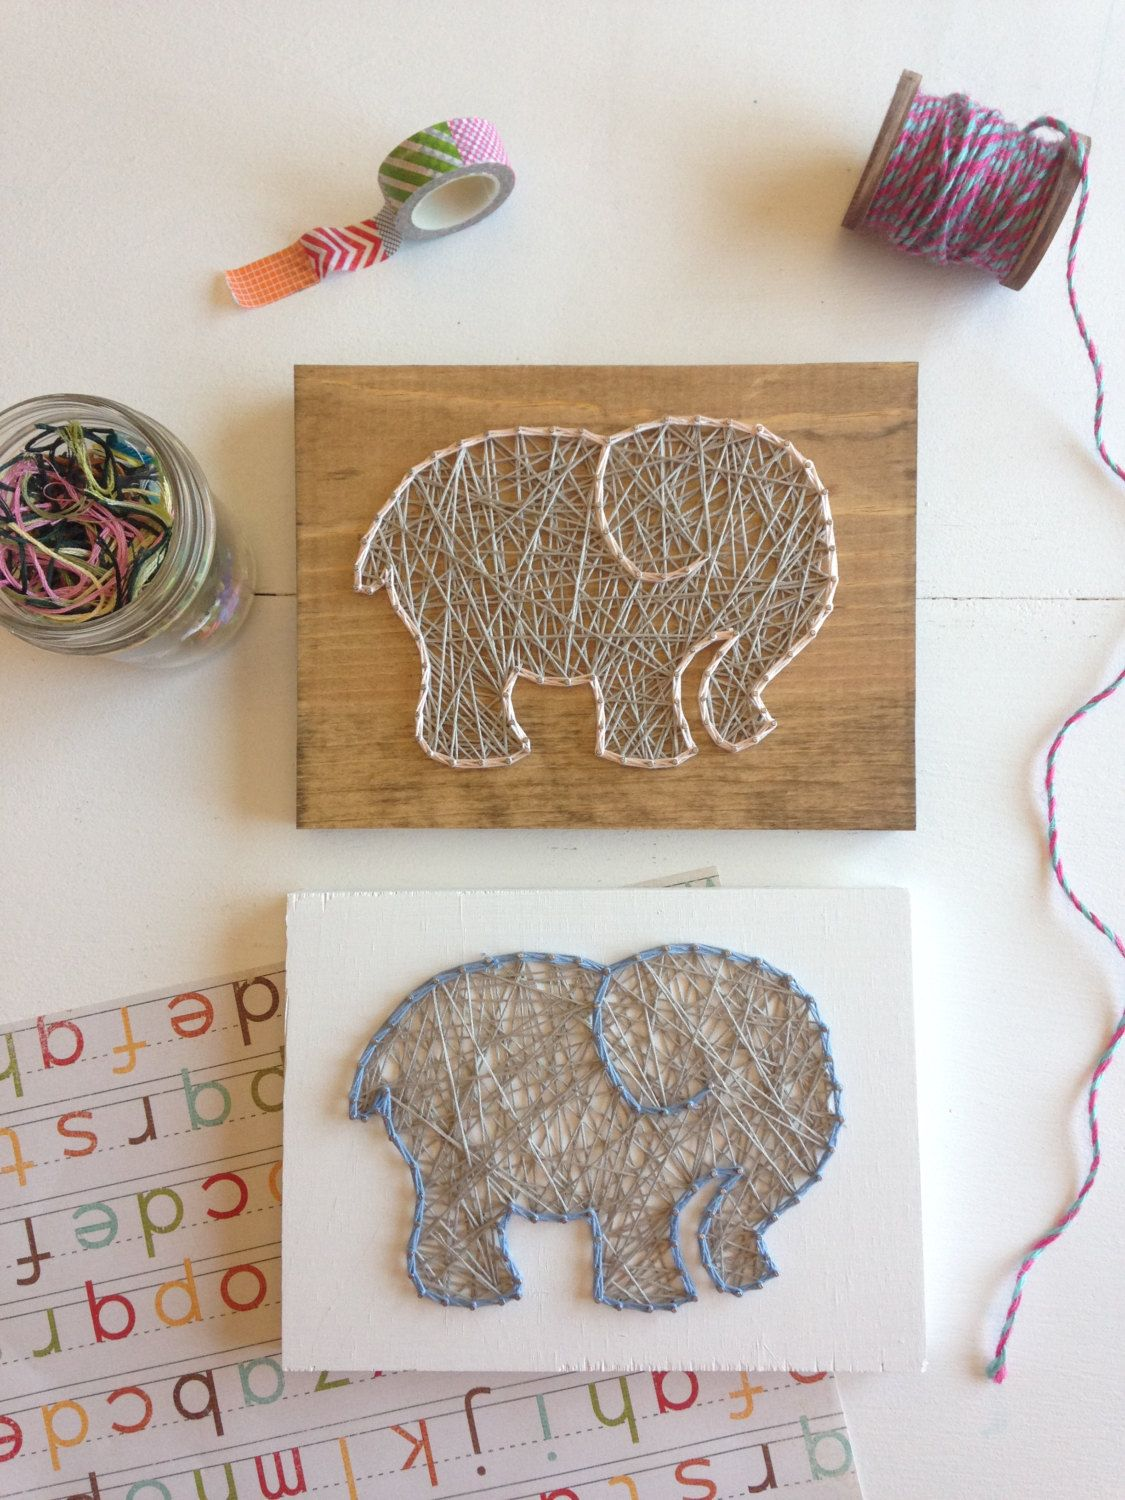 Mini String Art Elephant Nursery Decor Baby Shower Gift Gray and Choose your color wood sign and string colorful fun bright home decor from my Etsy shop https://www.etsy.com/listing/467877533/mini-string-art-elephant-nursery-decor